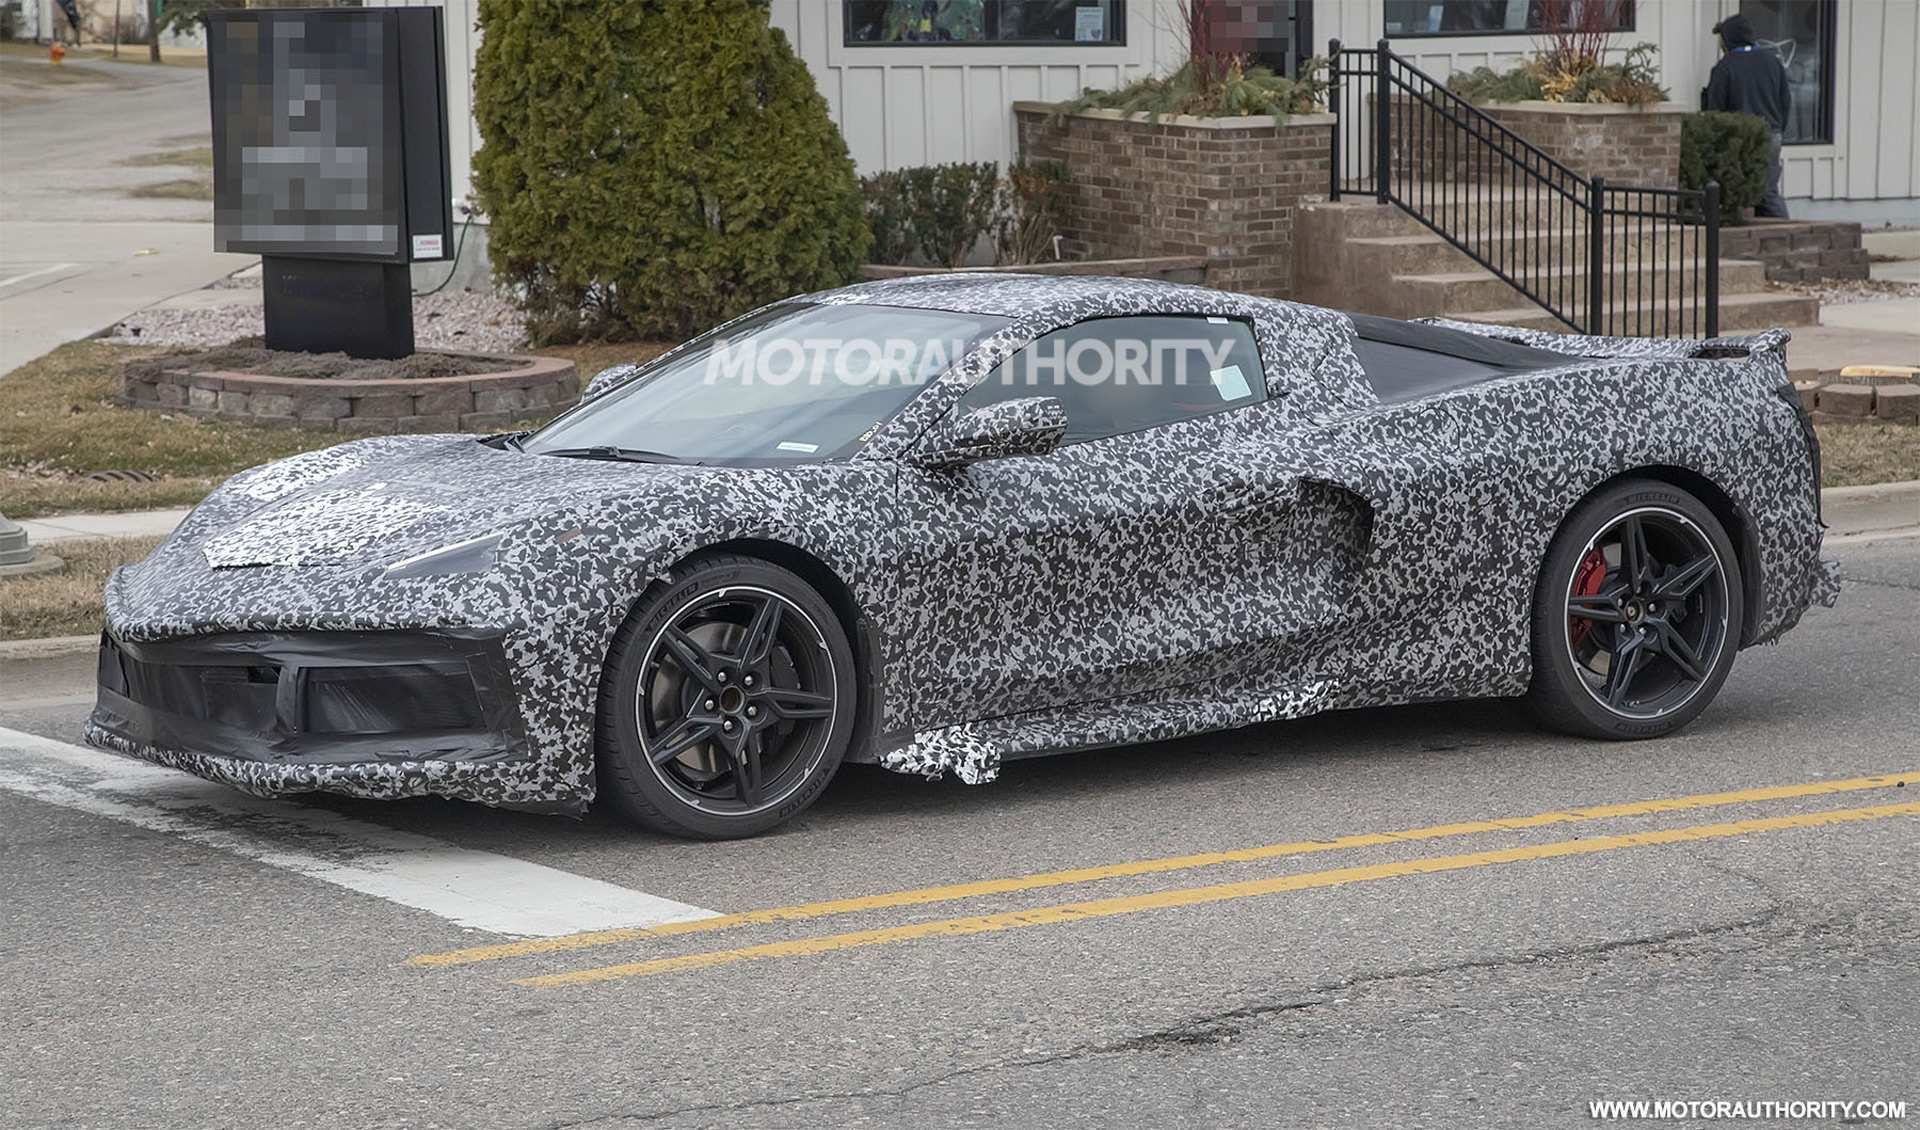 52 The 2020 Chevrolet Corvette Video Rumors